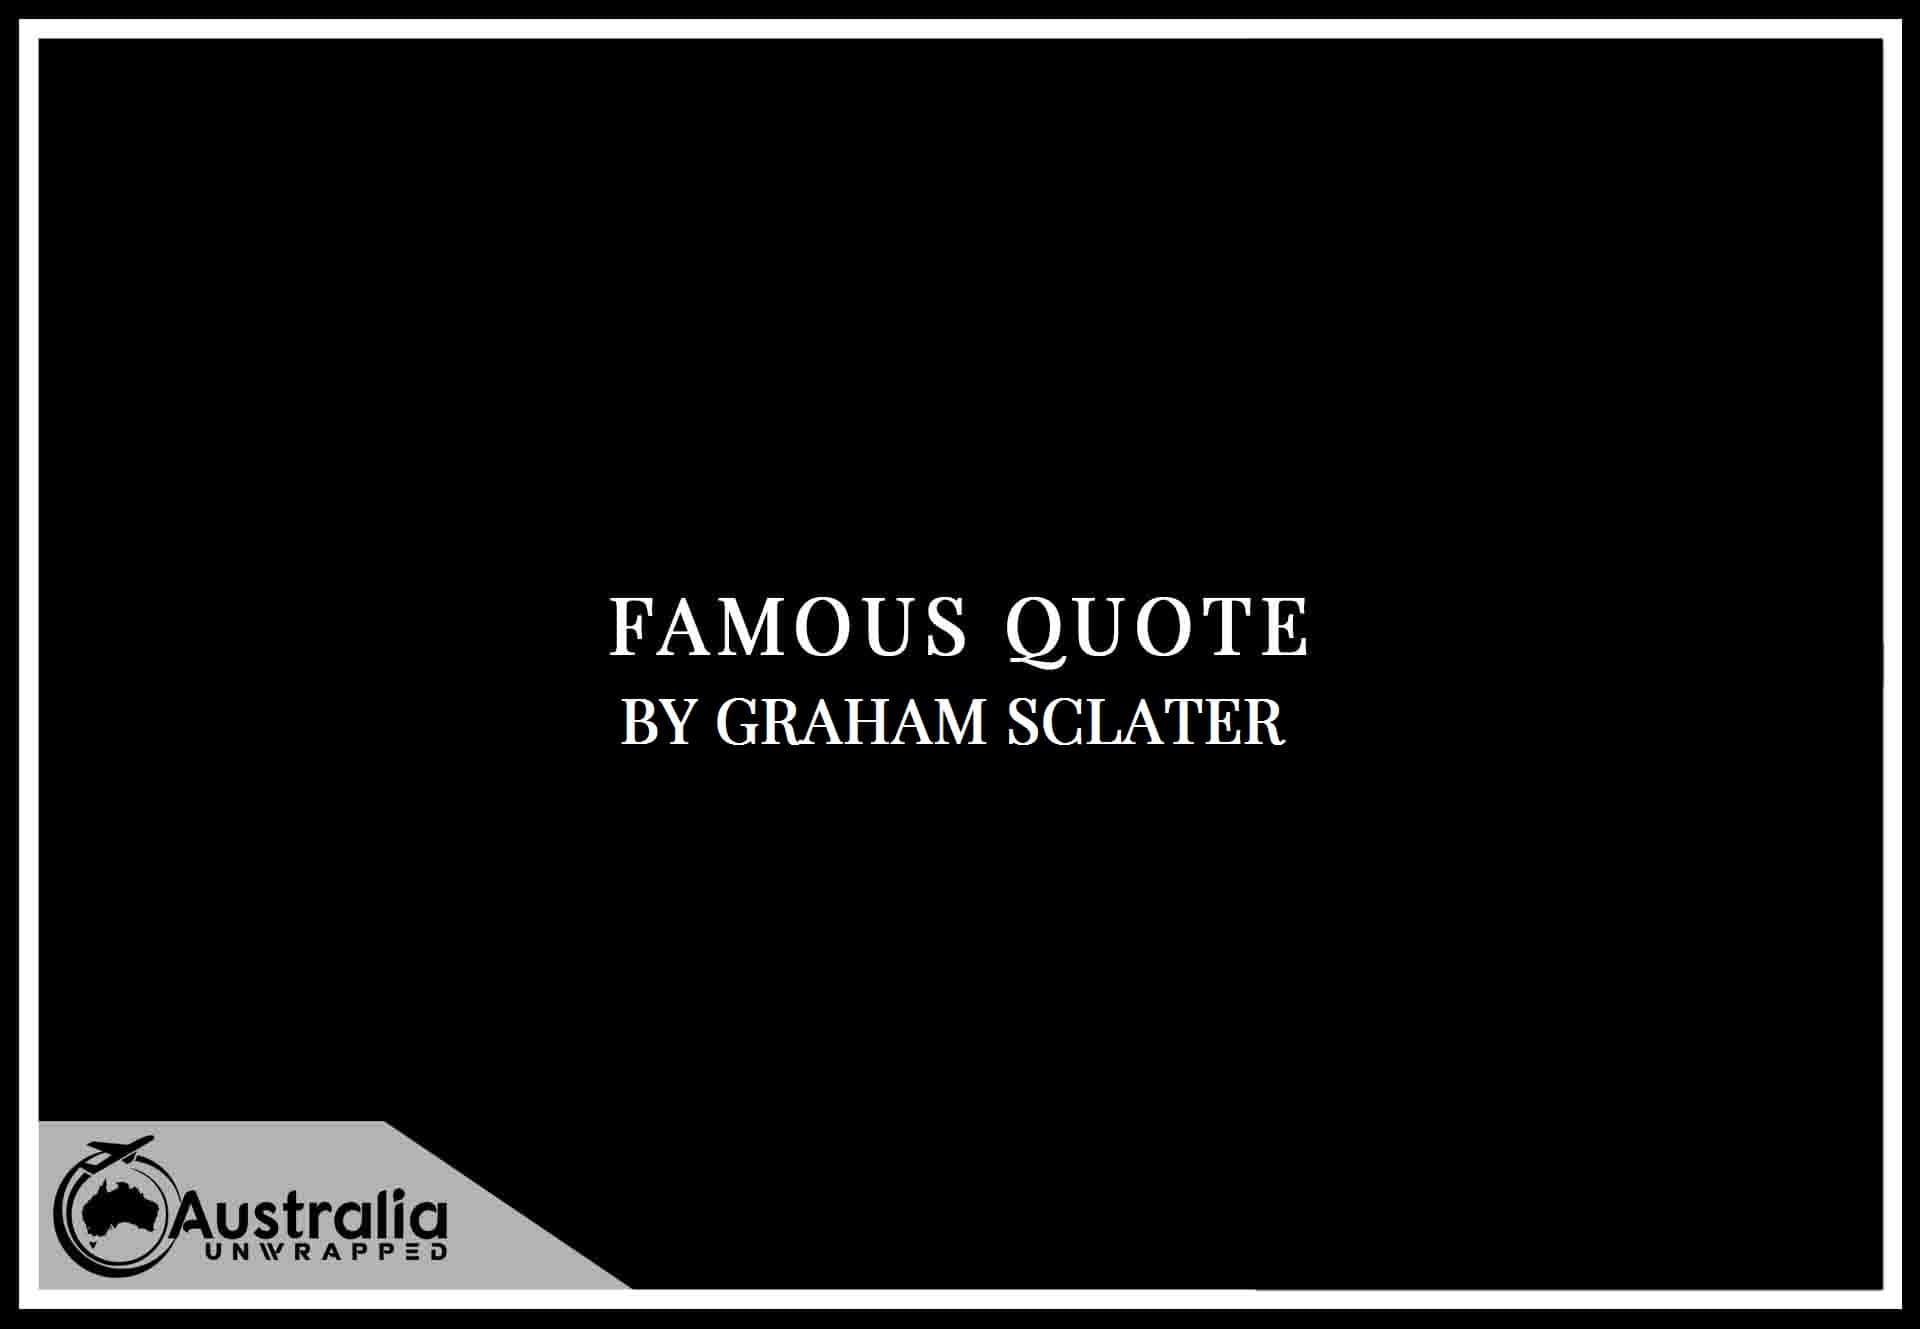 Graham Sclater's Top 1 Popular and Famous Quotes